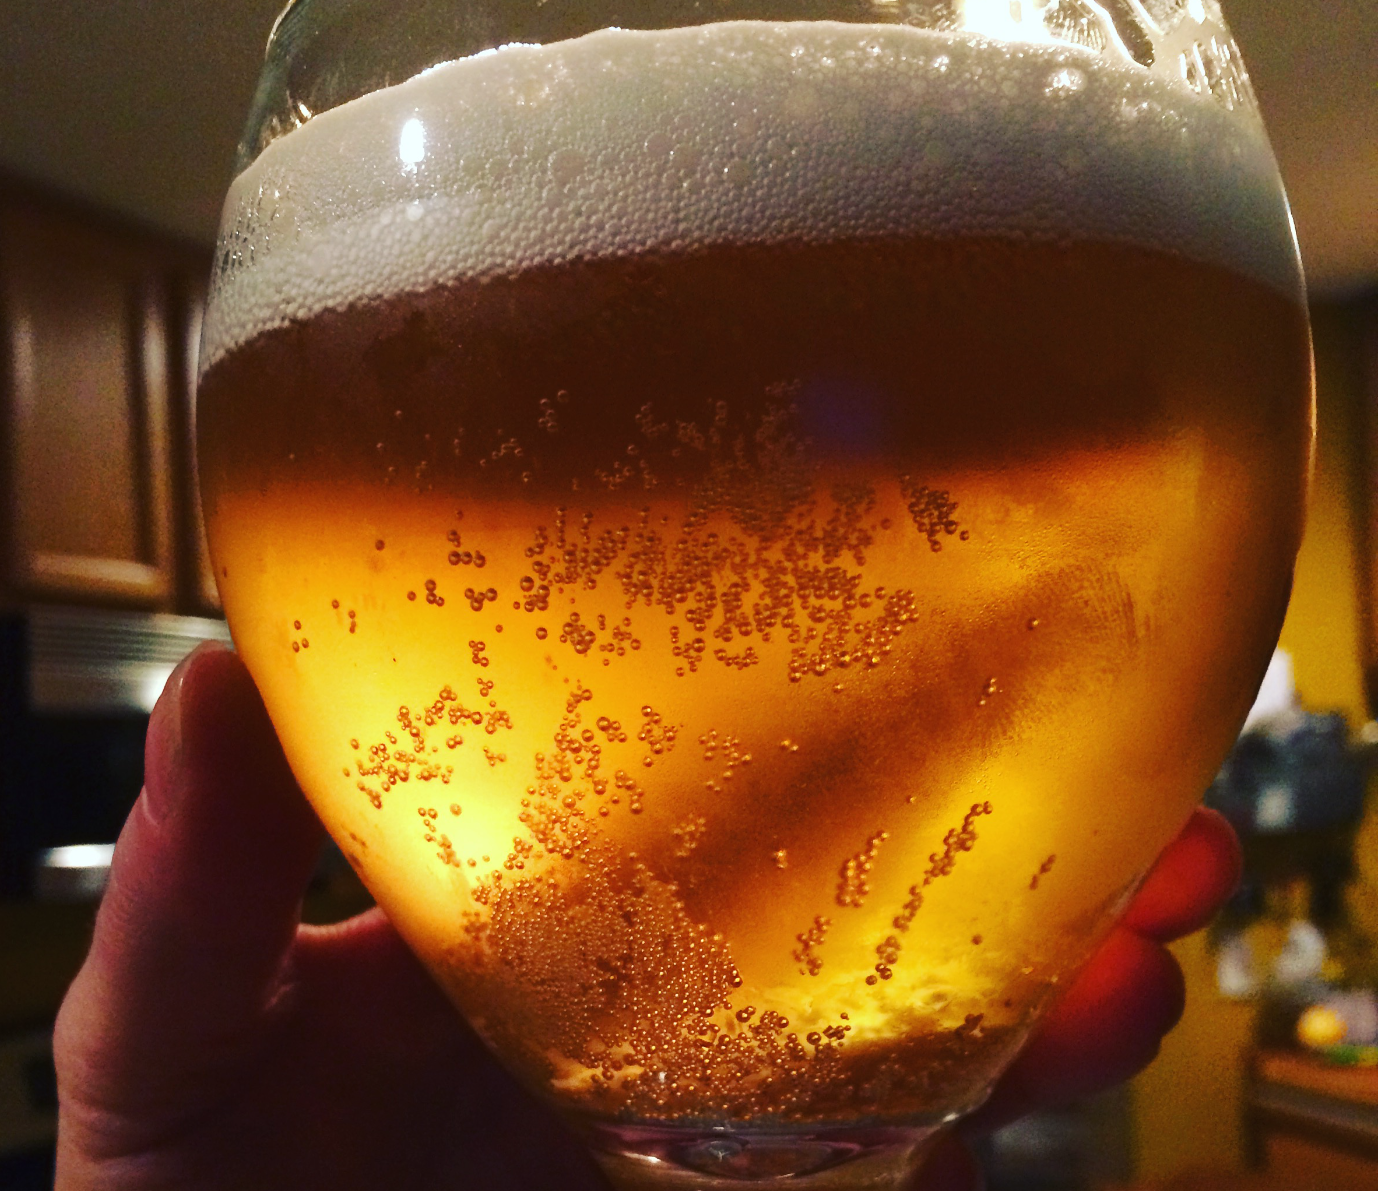 craft beer in a glass with bubbles